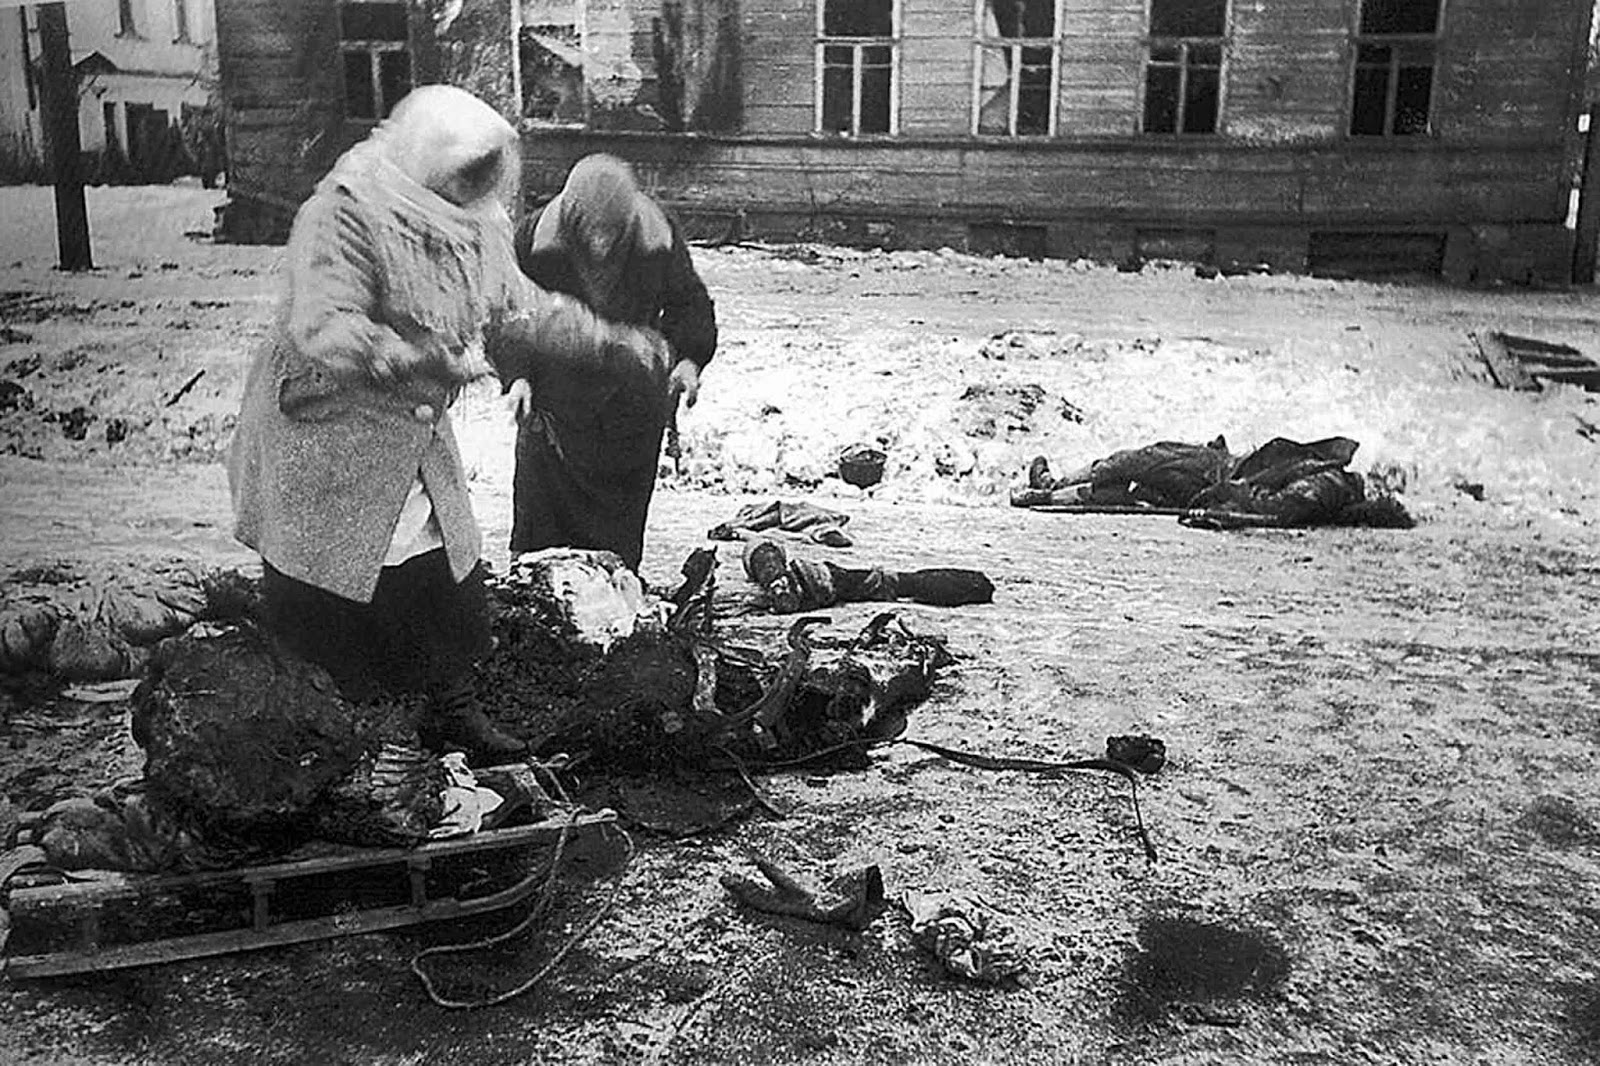 Economic destruction and human losses in Leningrad on both sides exceeded those of the Battle of Stalingrad, the Battle of Moscow, or the atomic bombings of Hiroshima and Nagasaki.